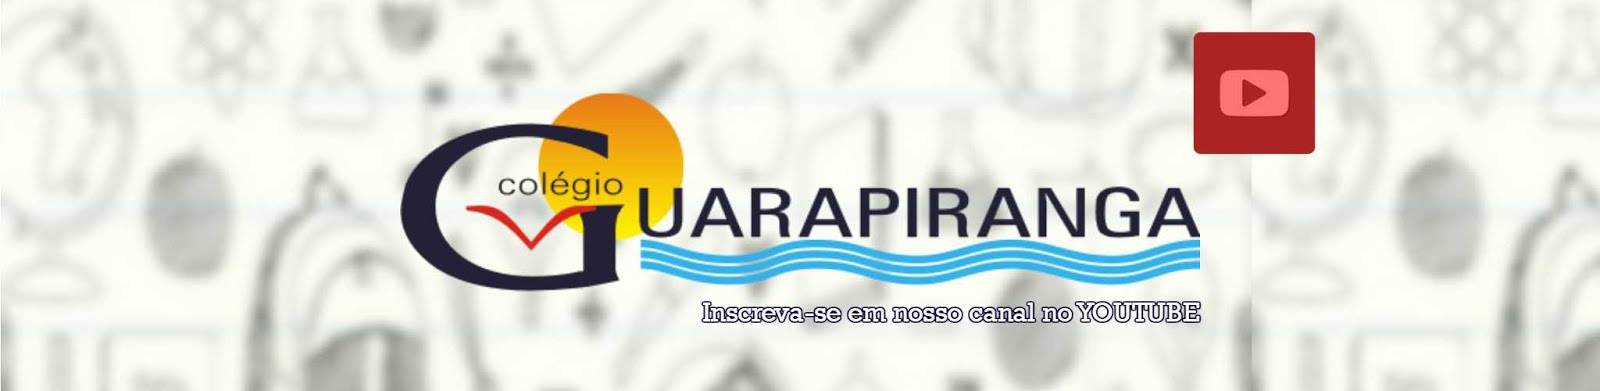 Guarapiranga/YouTube